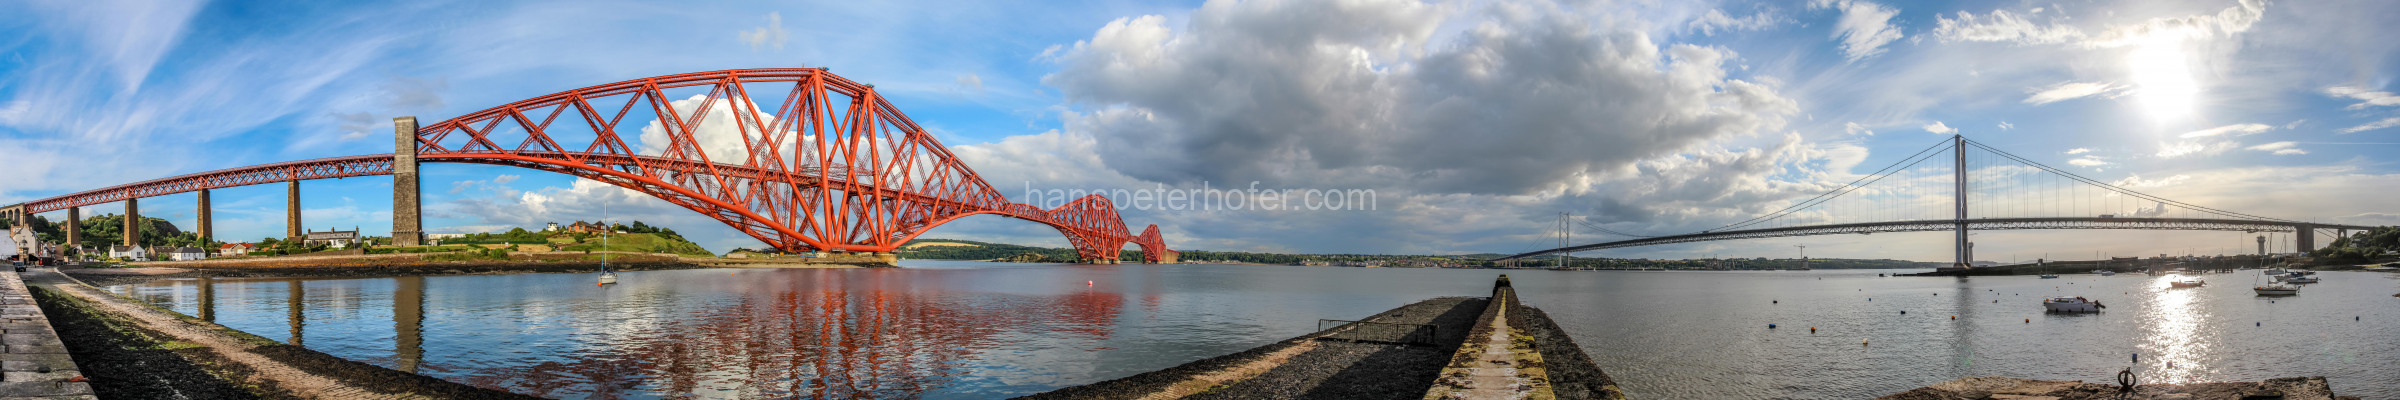 Pano_Firth-of-Forth-